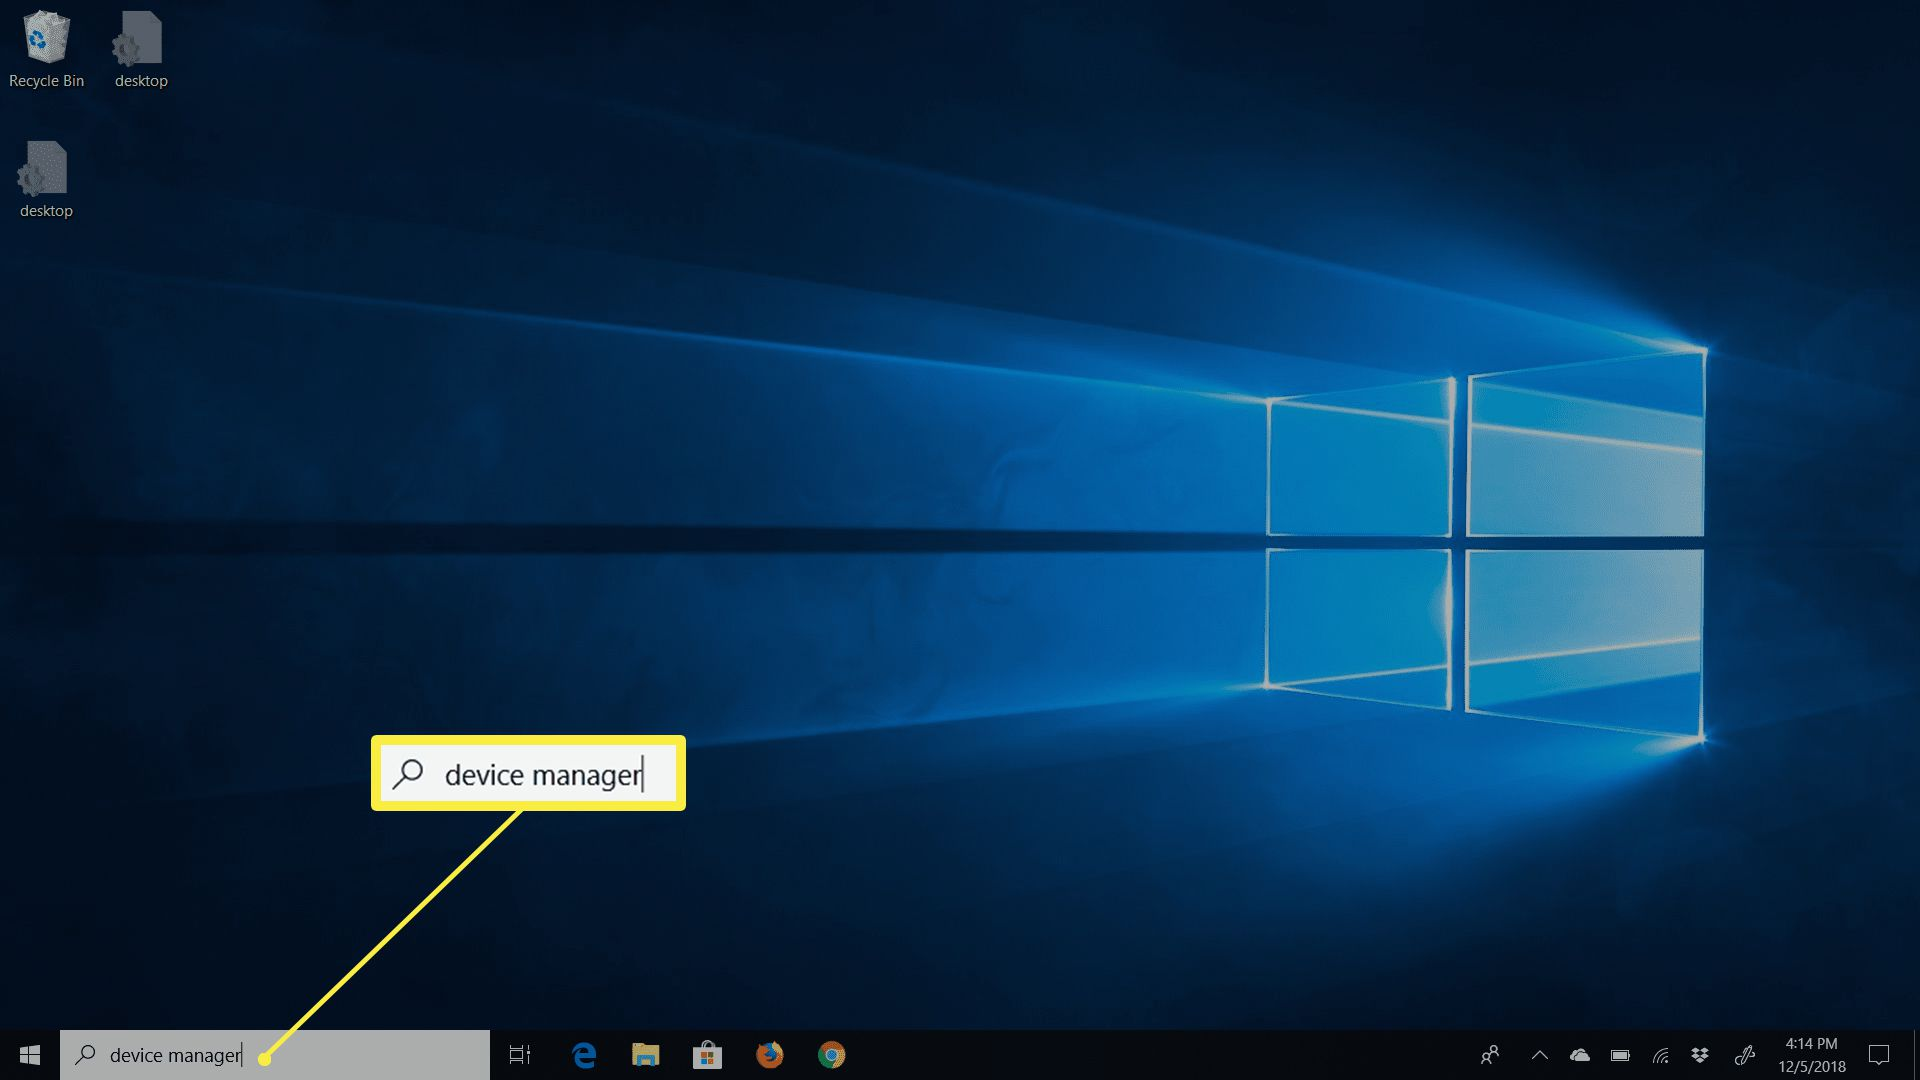 Search box in Windows with device manager entry